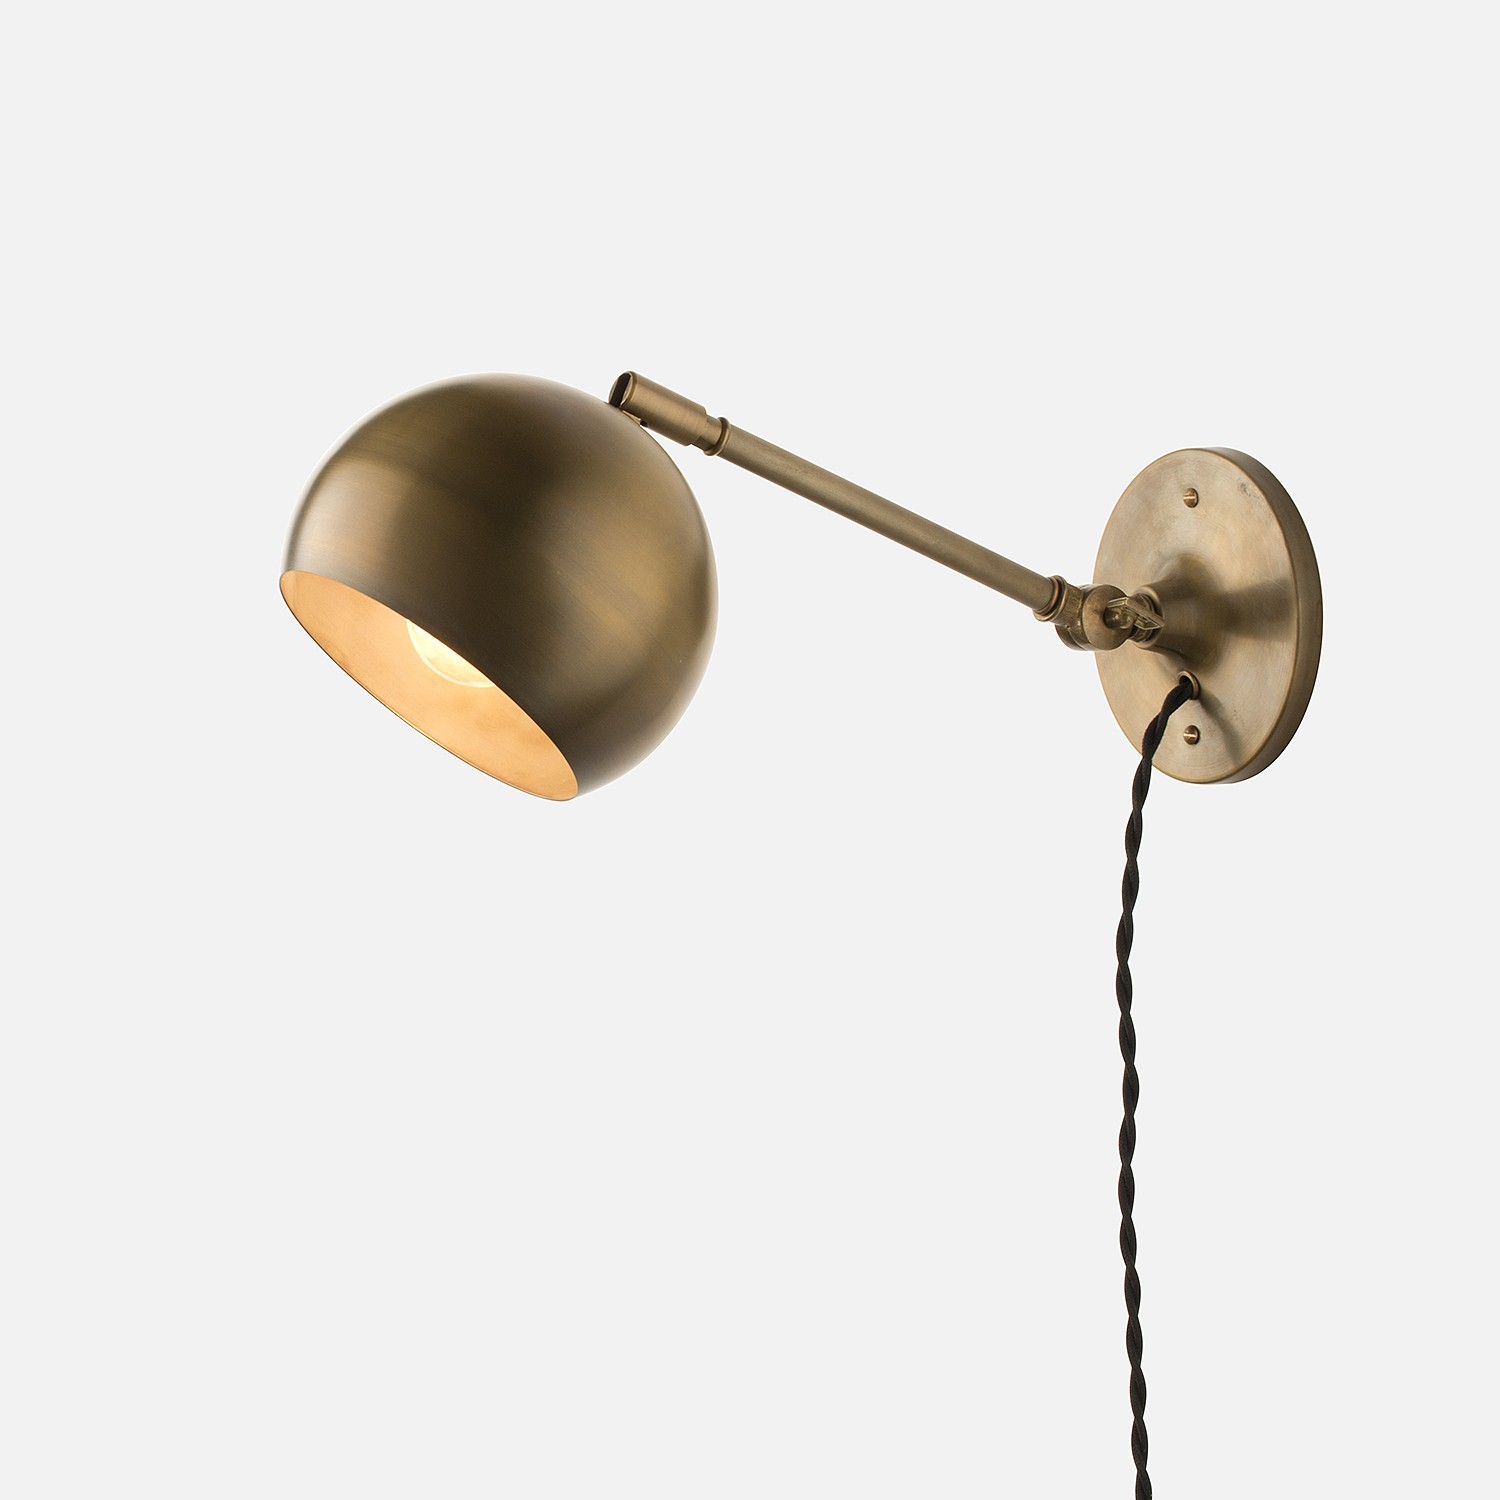 Wall light with cord – add the beauty of an exterior of your home - Wall Light With Cord - Add The Beauty Of An Exterior Of Your Home